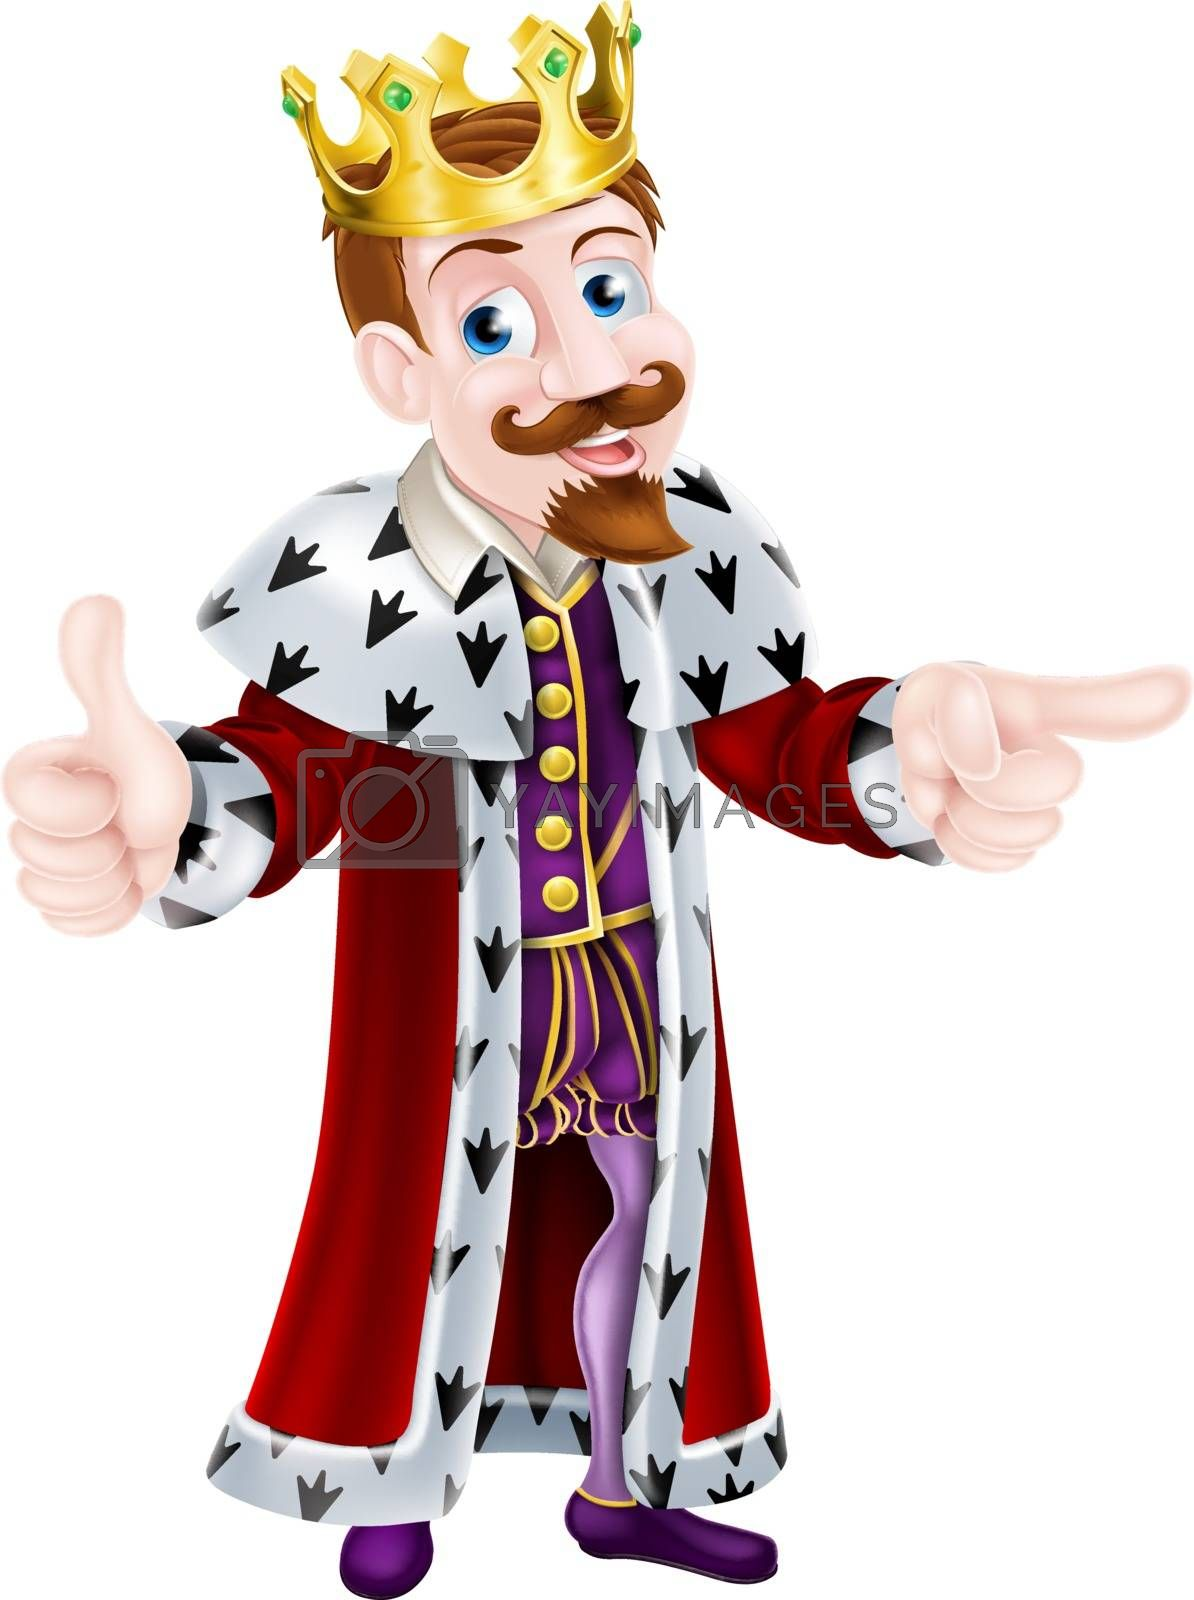 King cartoon character wearing a crown giving a thumbs up with one hand and pointing with the other